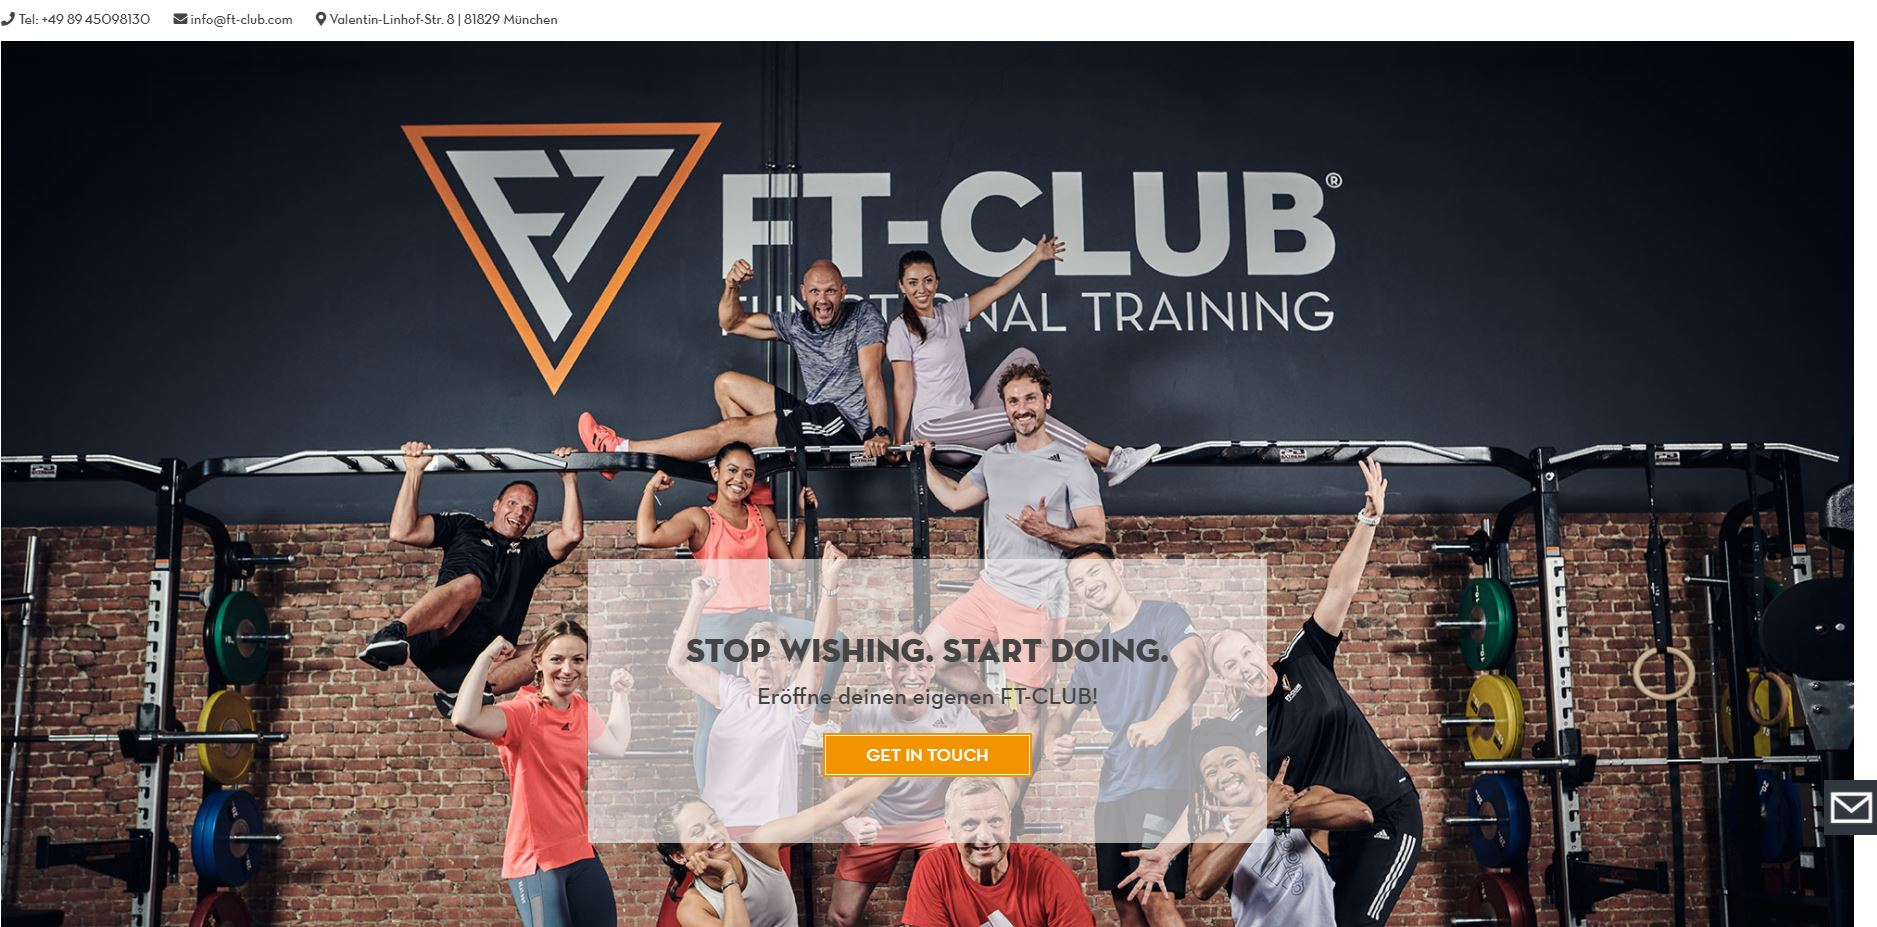 Neue Homepage des FT-CLUB